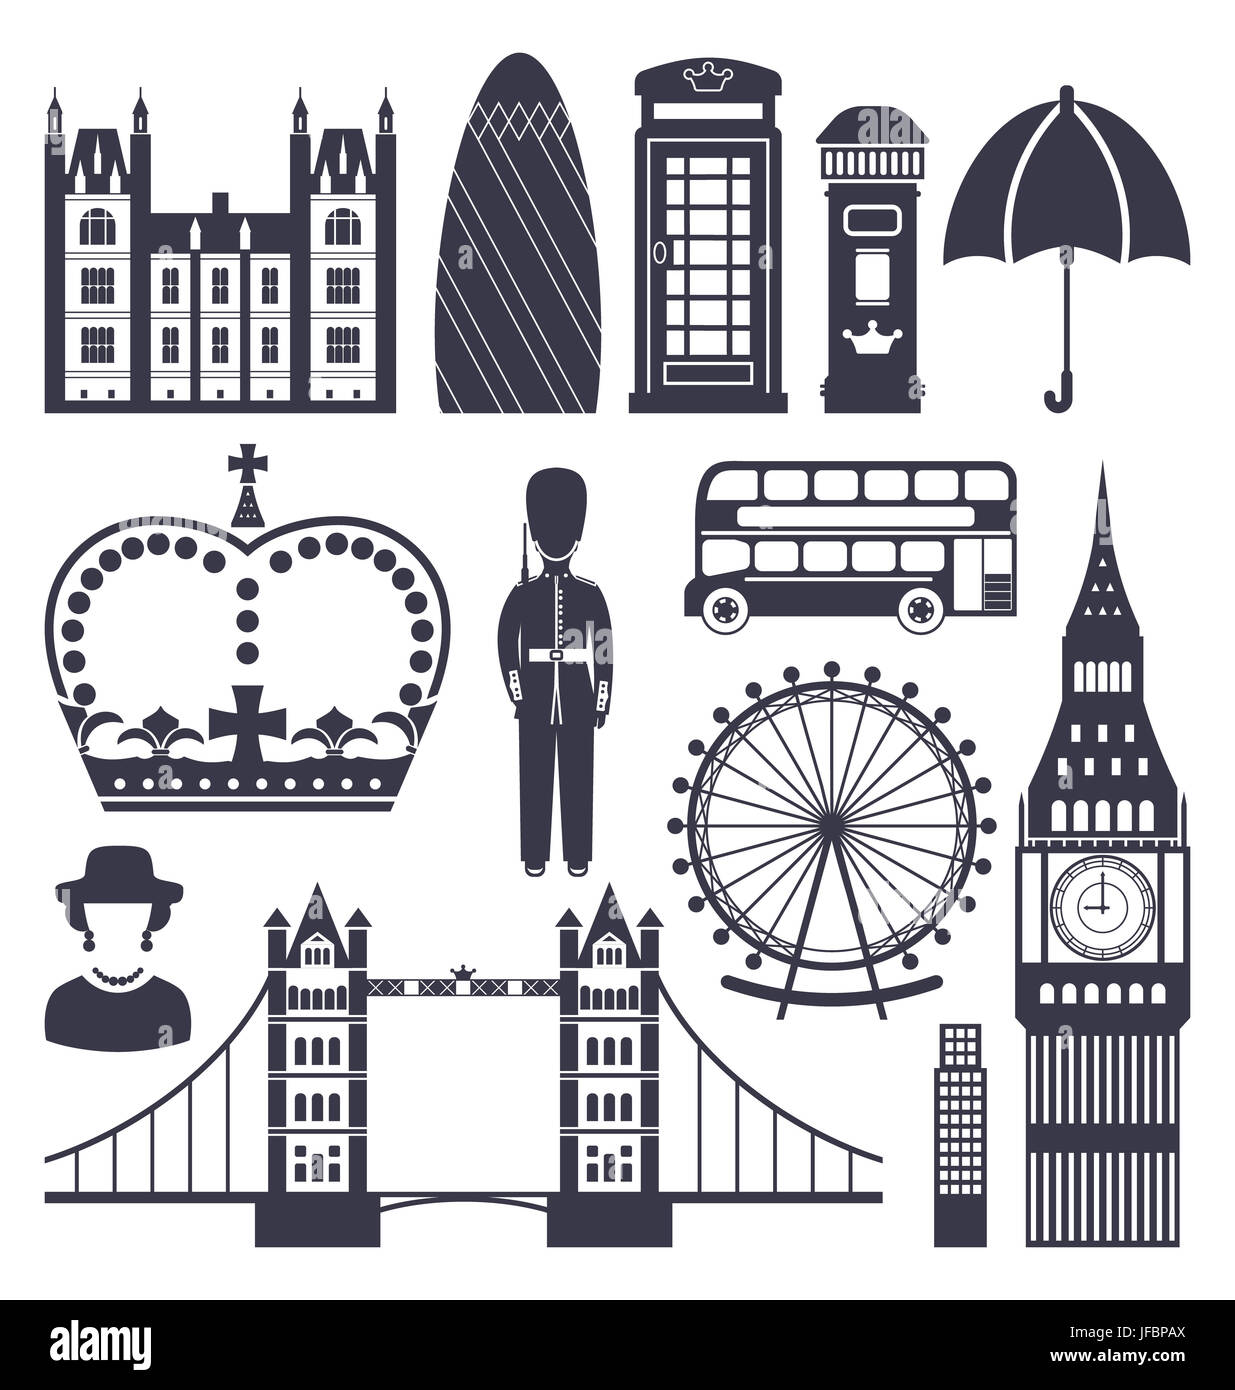 Symbols of a queen gallery symbol and sign ideas illustration silhouette symbols of great britain kingdom big ben illustration silhouette symbols of great britain kingdom buycottarizona